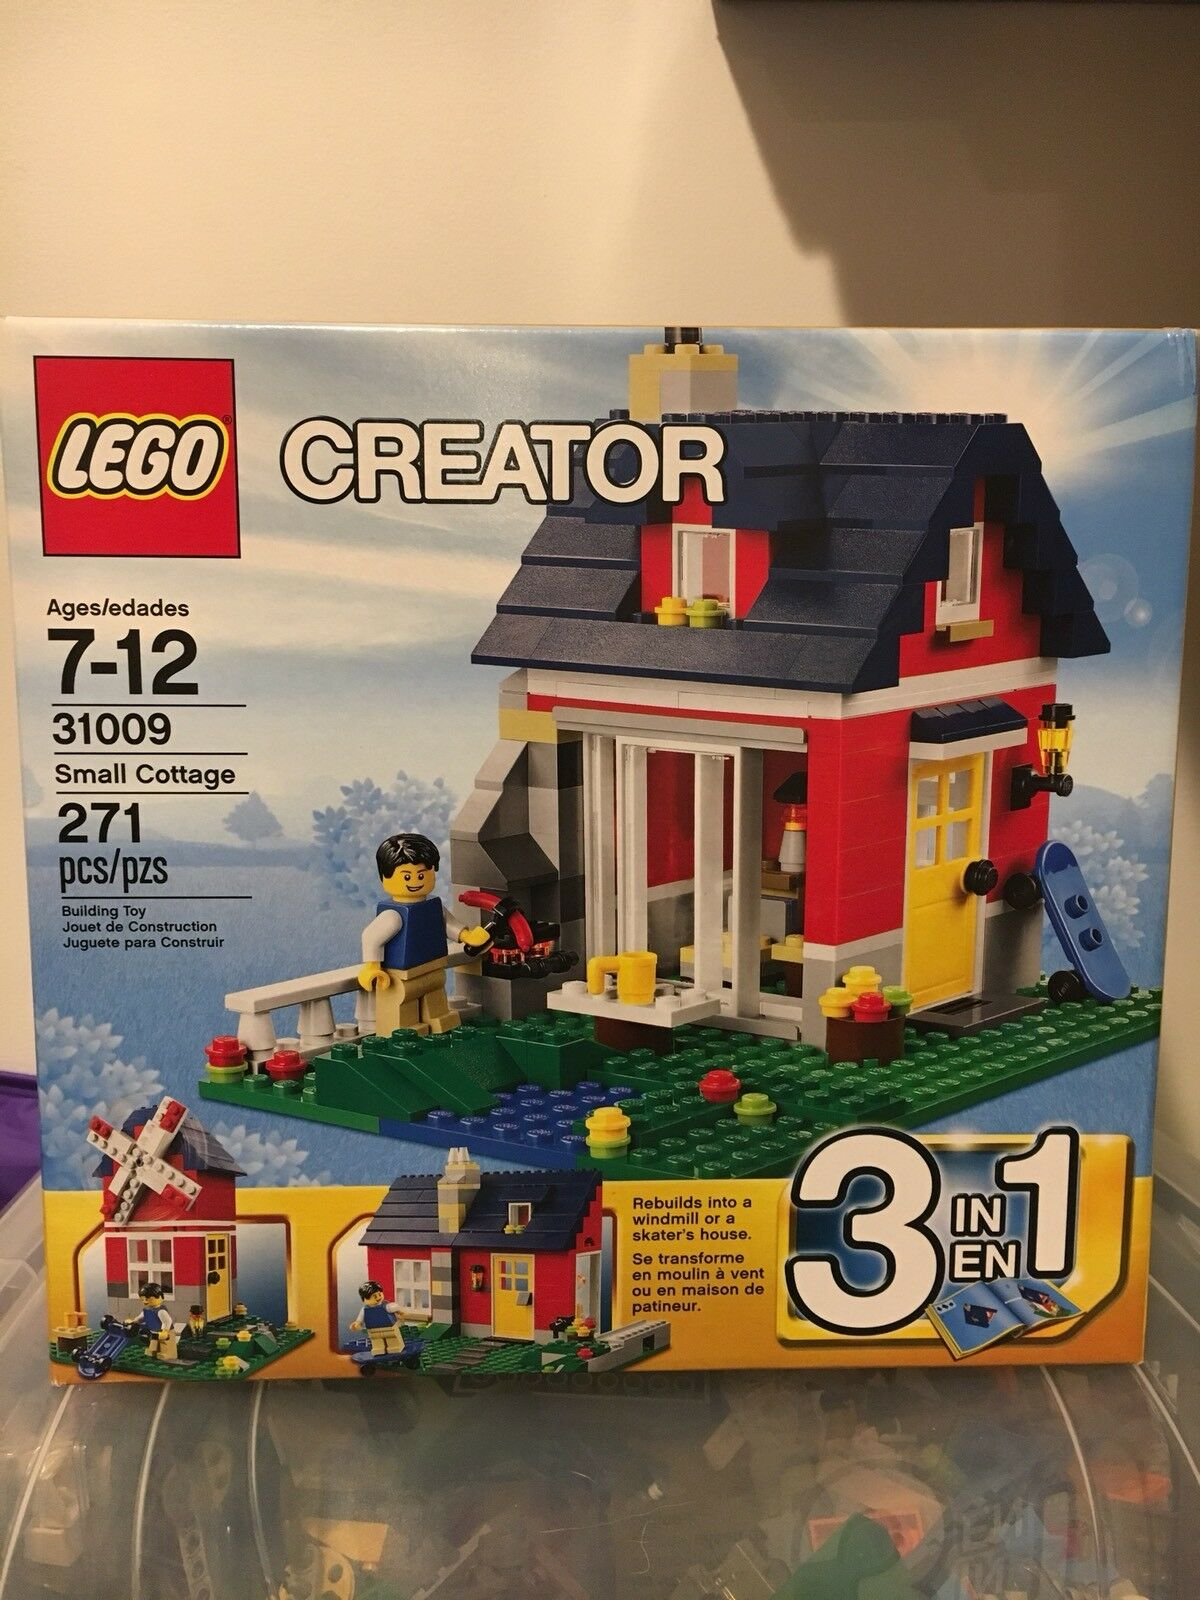 NEW LEGO Creator Small Cottage 31009 Sealed Box Fast Shipping